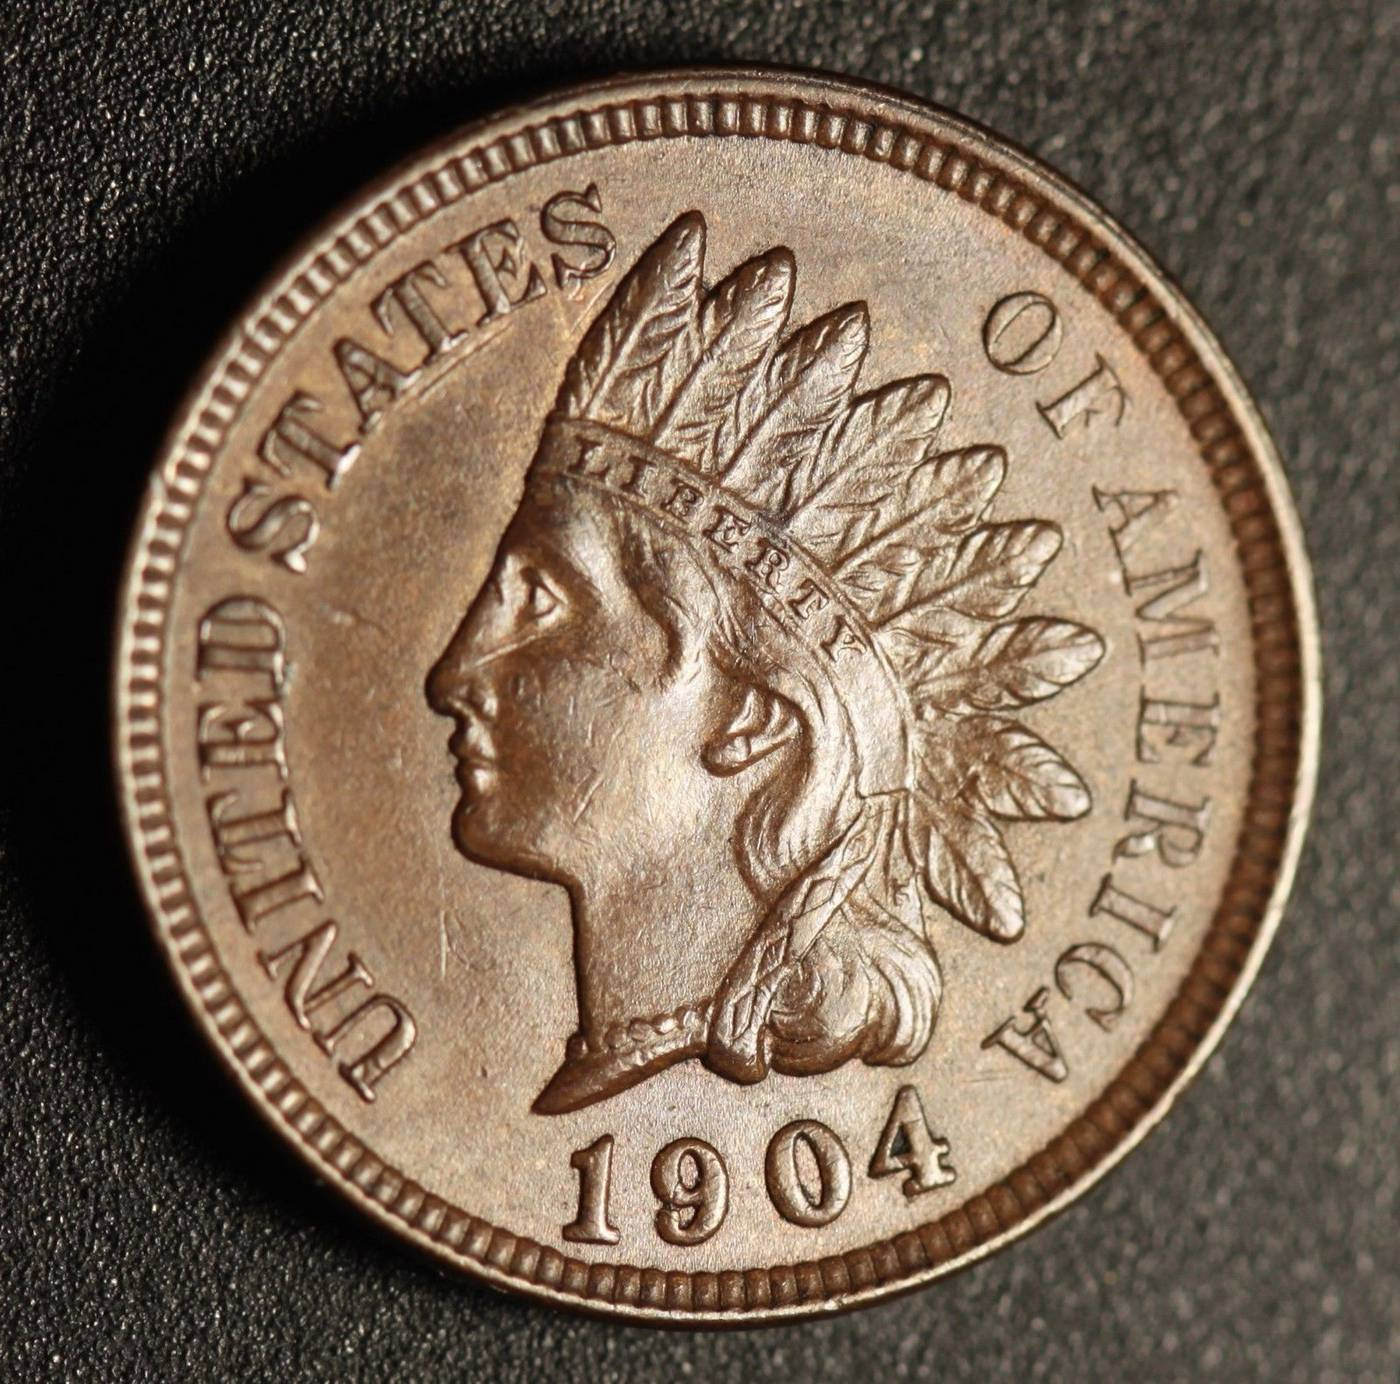 1904 RPD-015 - Indian Head Penny - Photo by Ed Nathanson